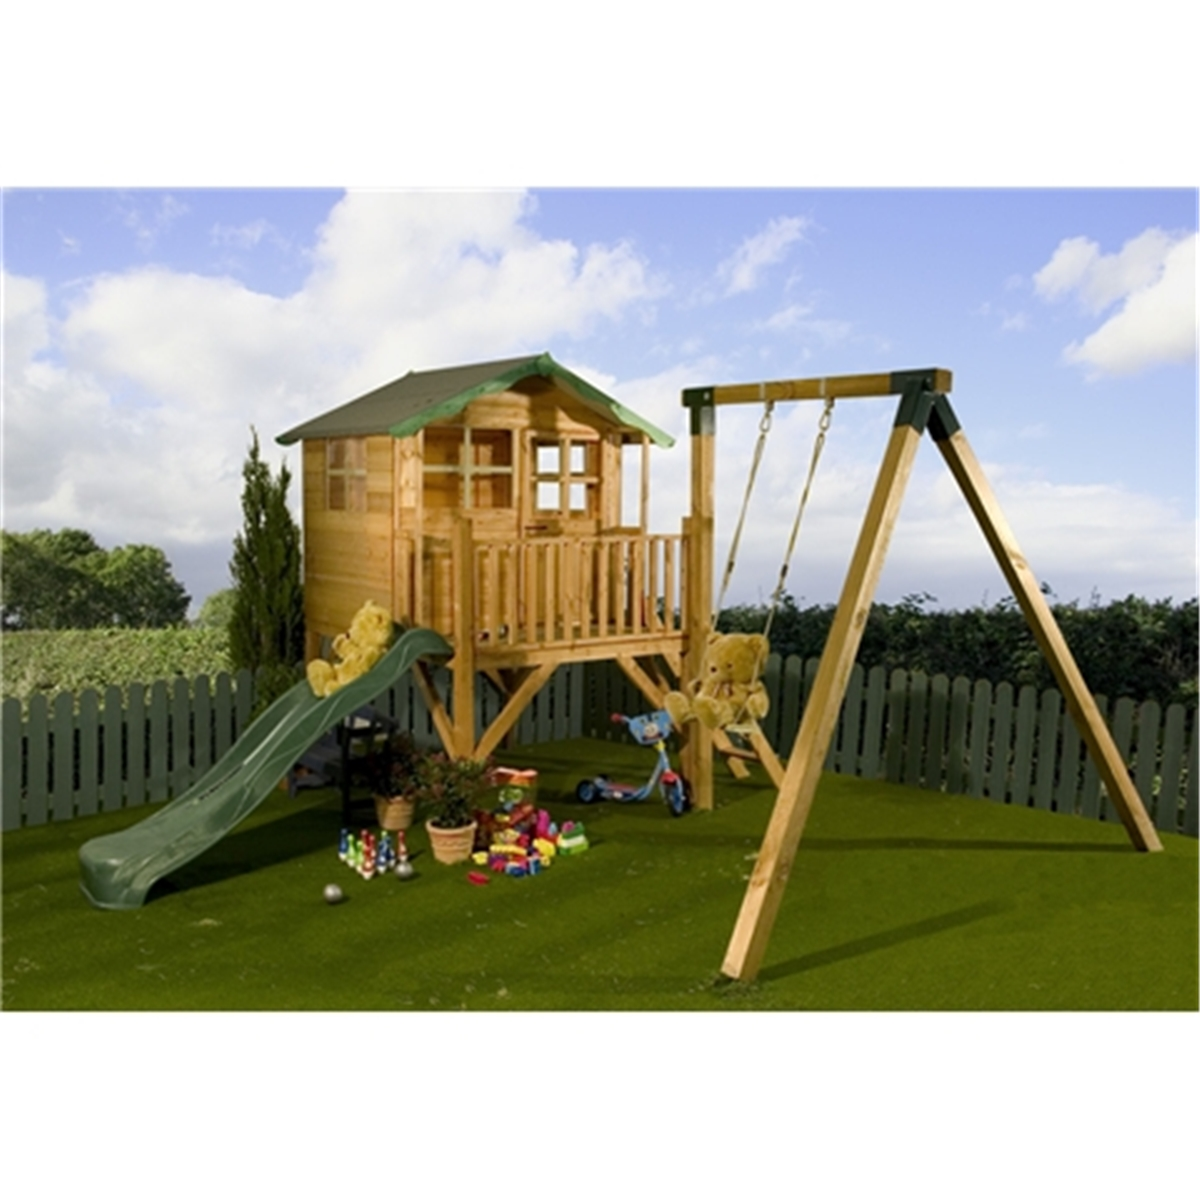 5 x 7 wooden tower playhouse with slide and swing